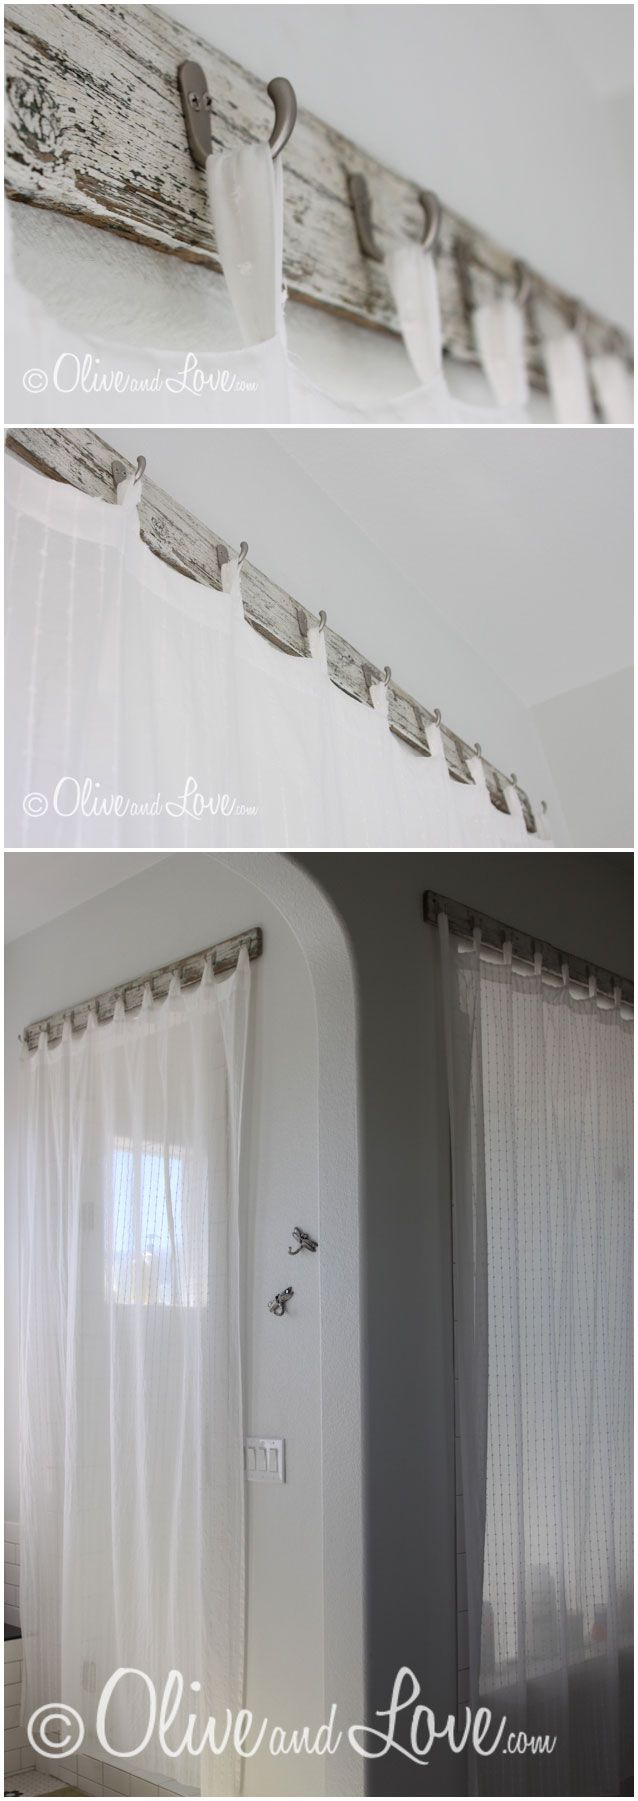 Hang curtains or shower curtains.